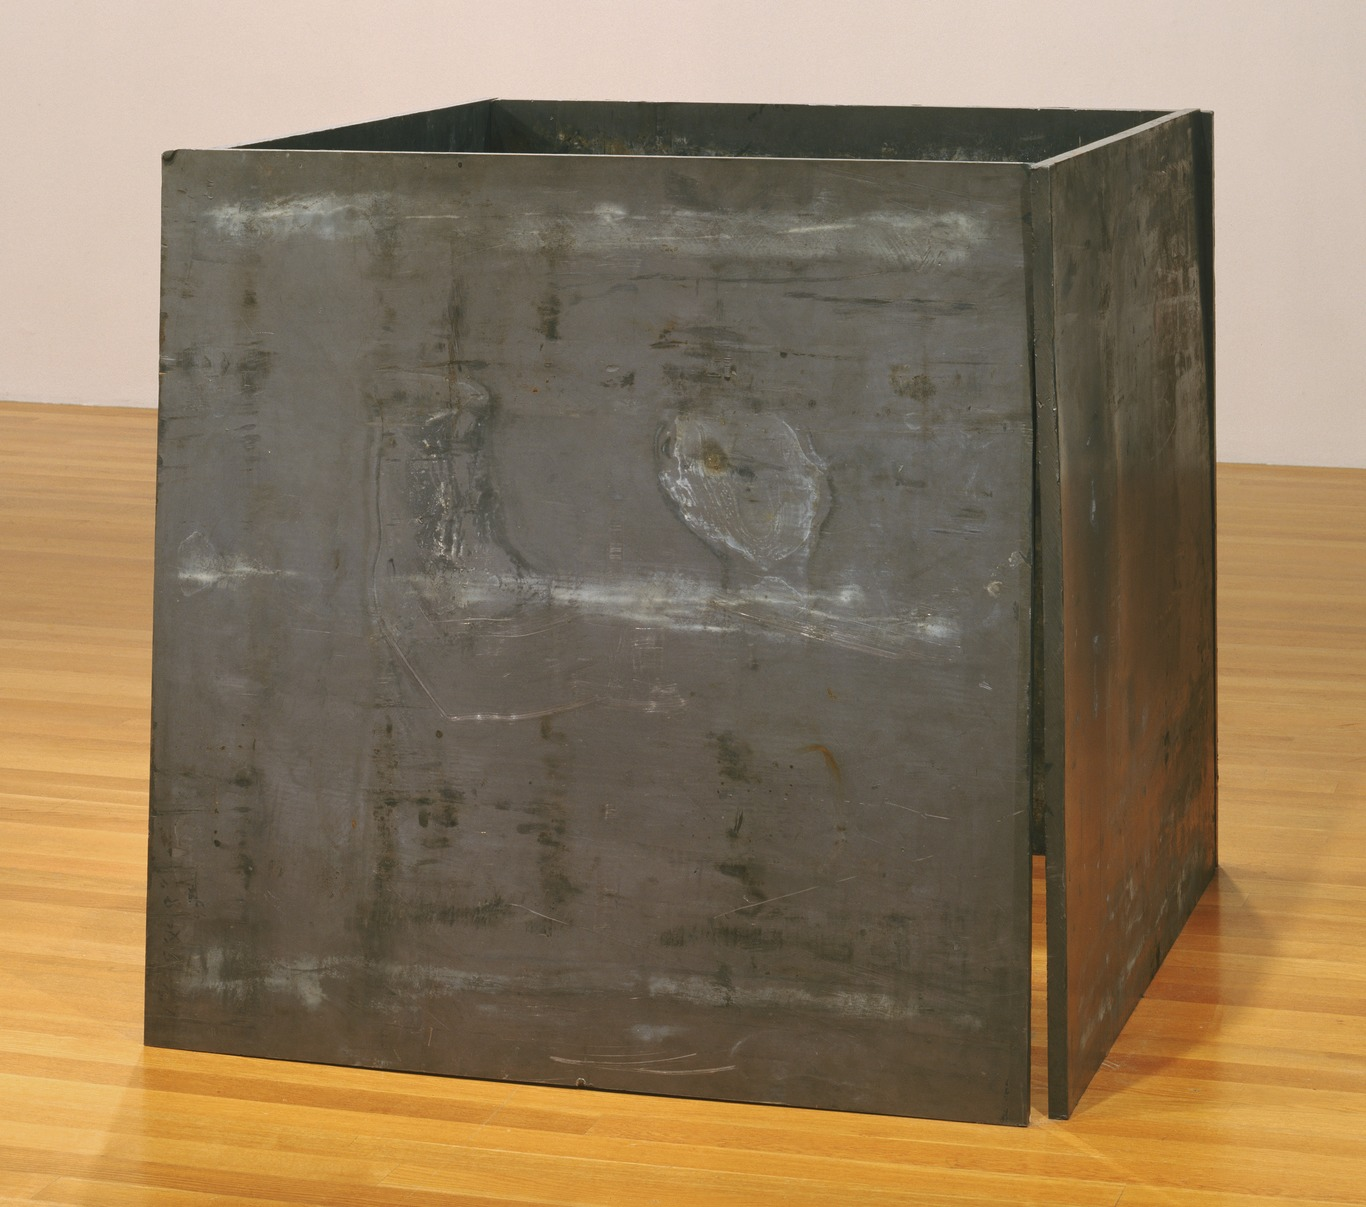 Richard Serra: One Ton Prop (House of Cards), lead antimony, four plates, each 1.22×1.22×0.025 m, 1969; refabricated 1986 (New York, Museum of Modern Art); © 2007 Richard Serra/Artists Rights Society (ARS), New York, courtesy of The Museum of Modern Art, New York